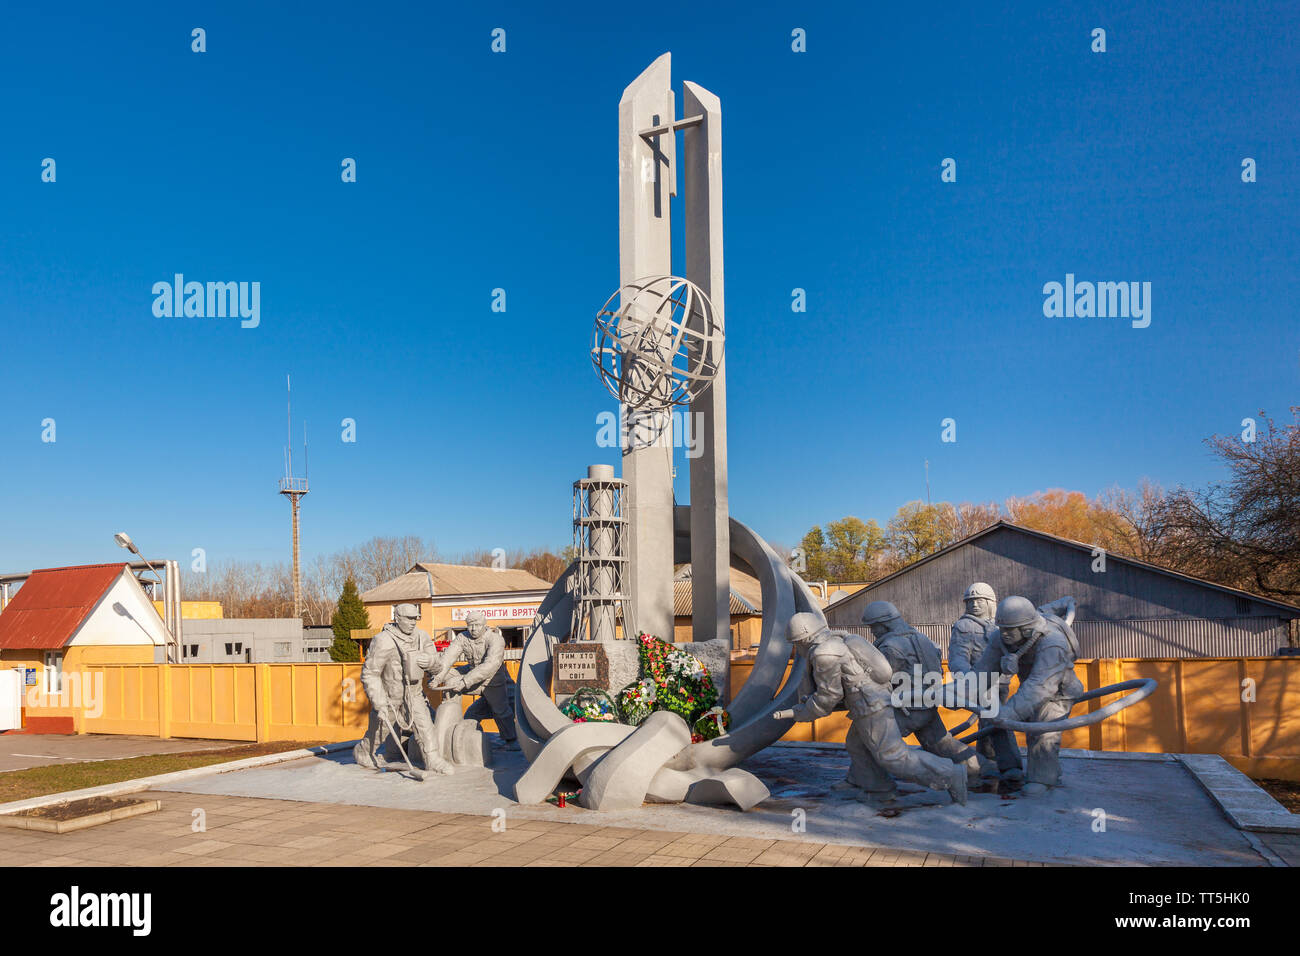 Chernobyl, Ukraine - November 2016, Monument In Honor of The Dead Firefighters In The Chernobyl Nuclear Power Plant Disaster Stock Photo